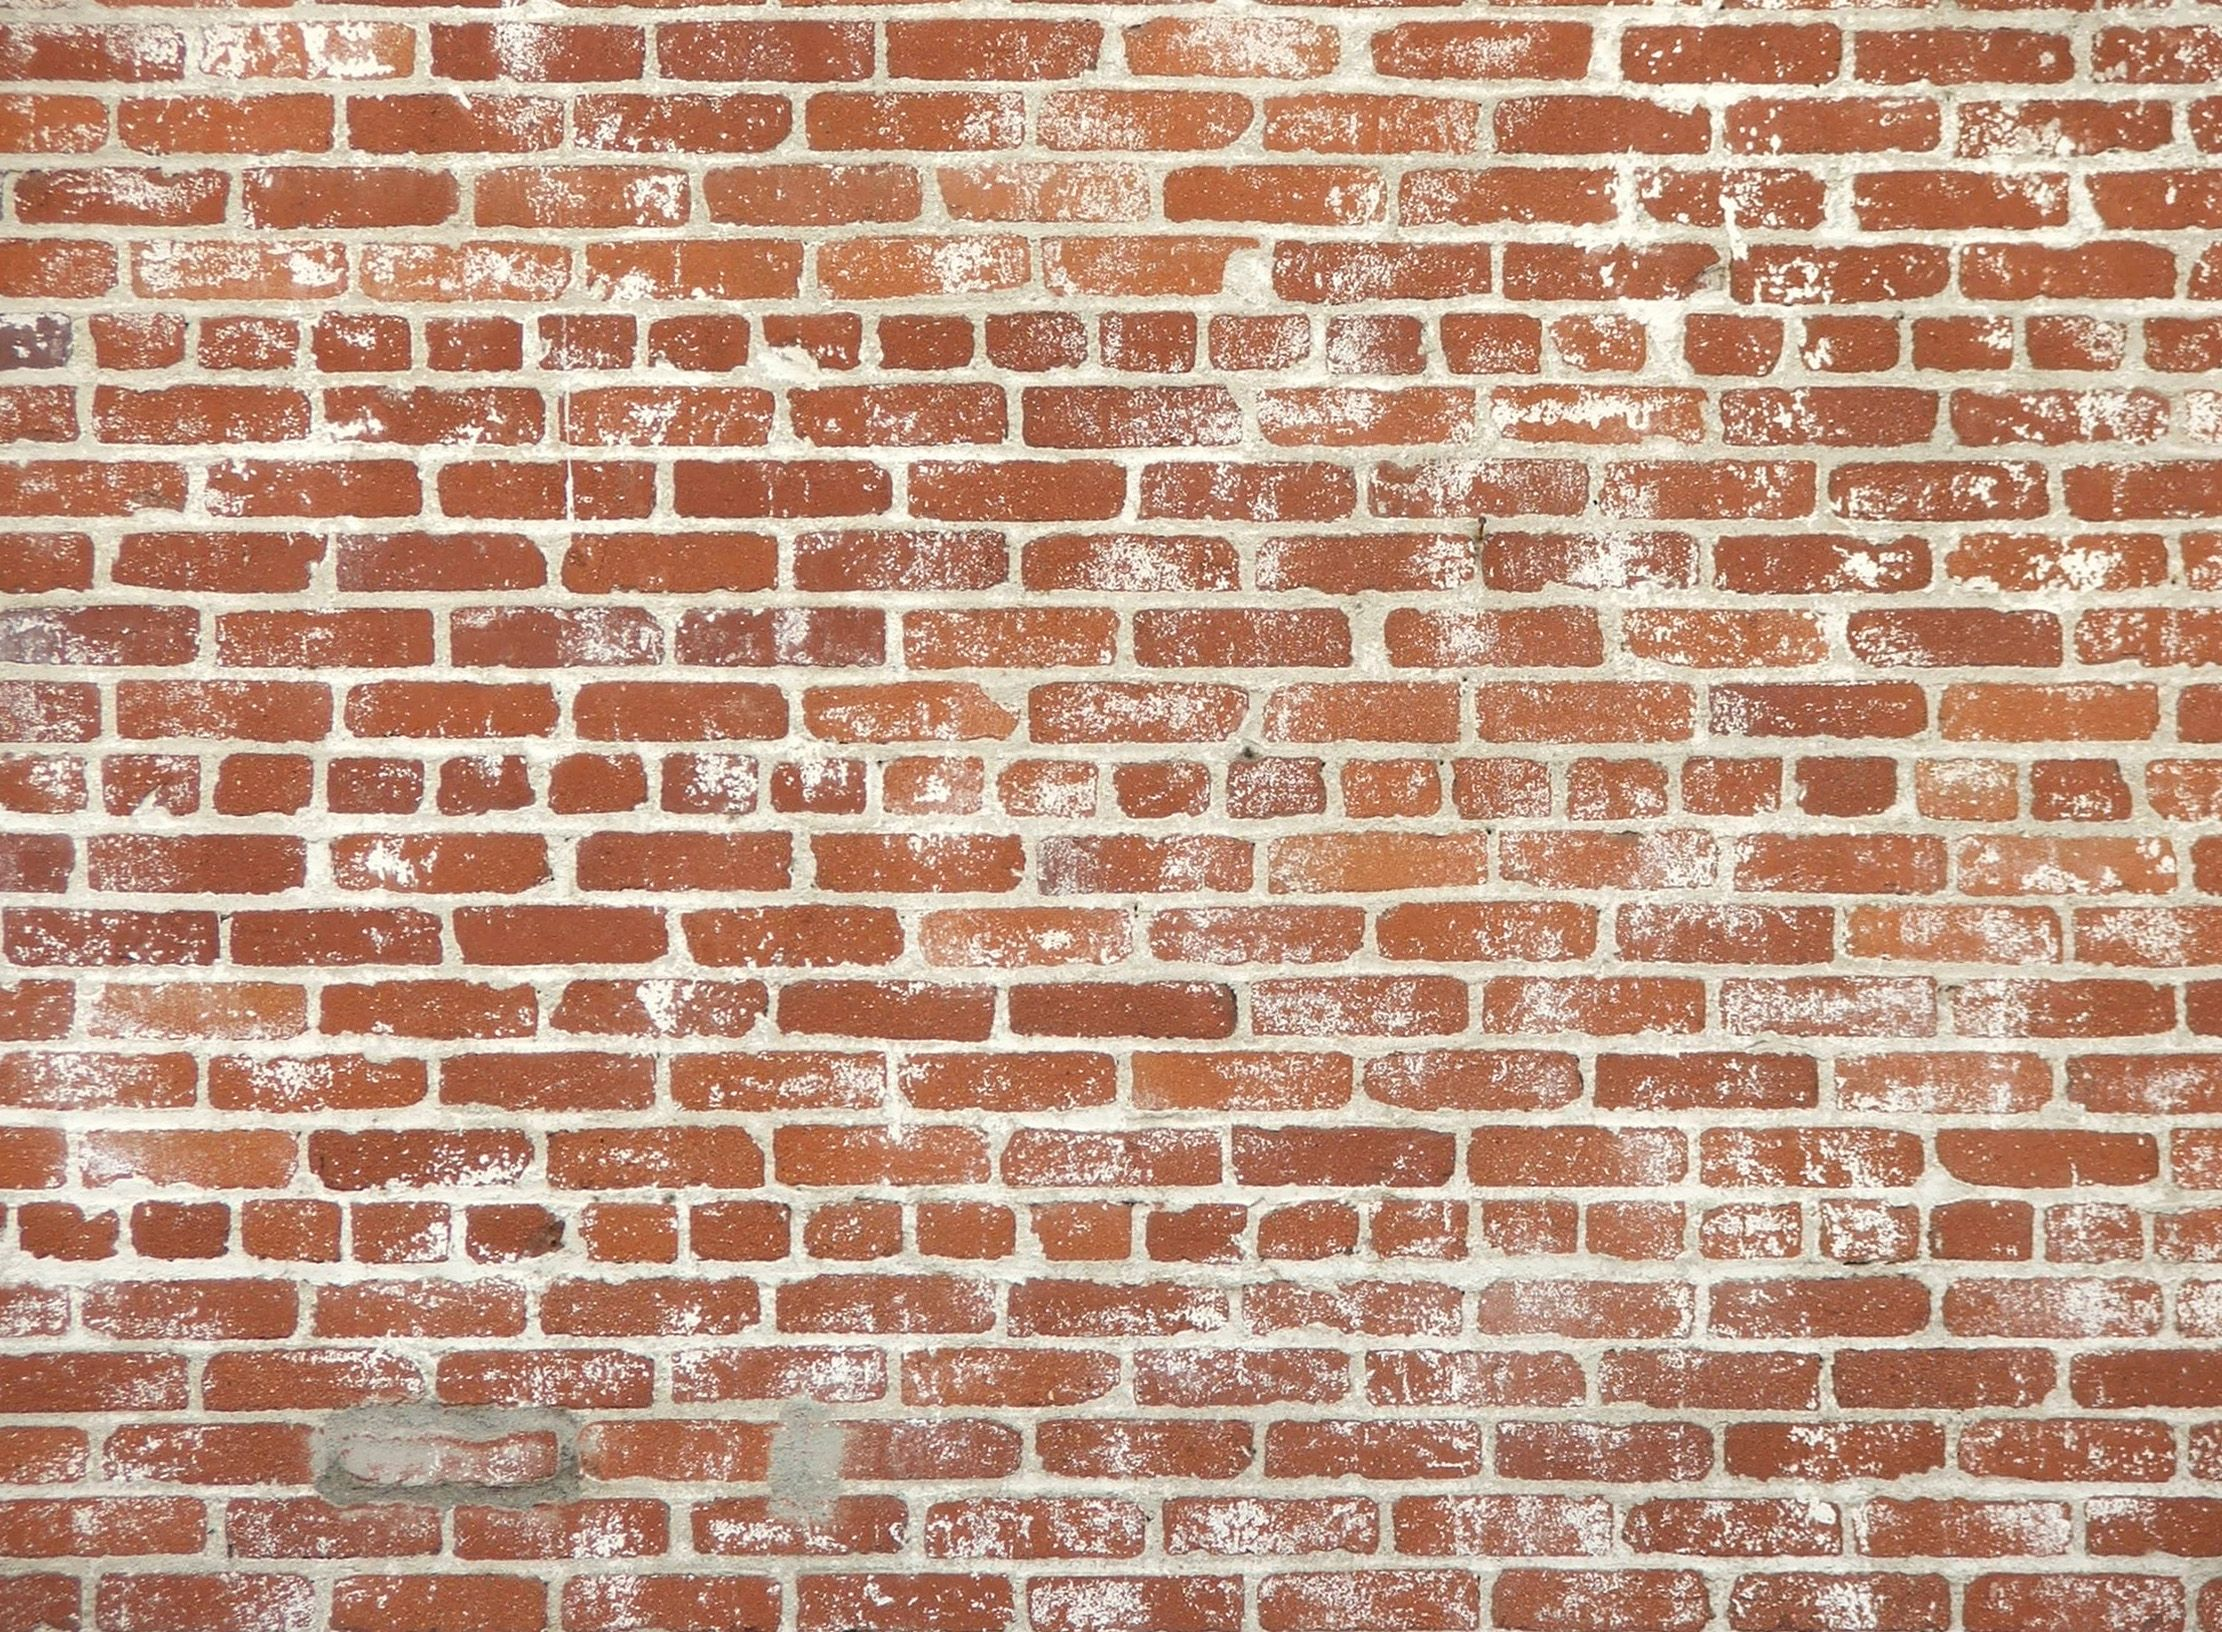 Brick wall background forty three texture and background for Wallpaper on house walls